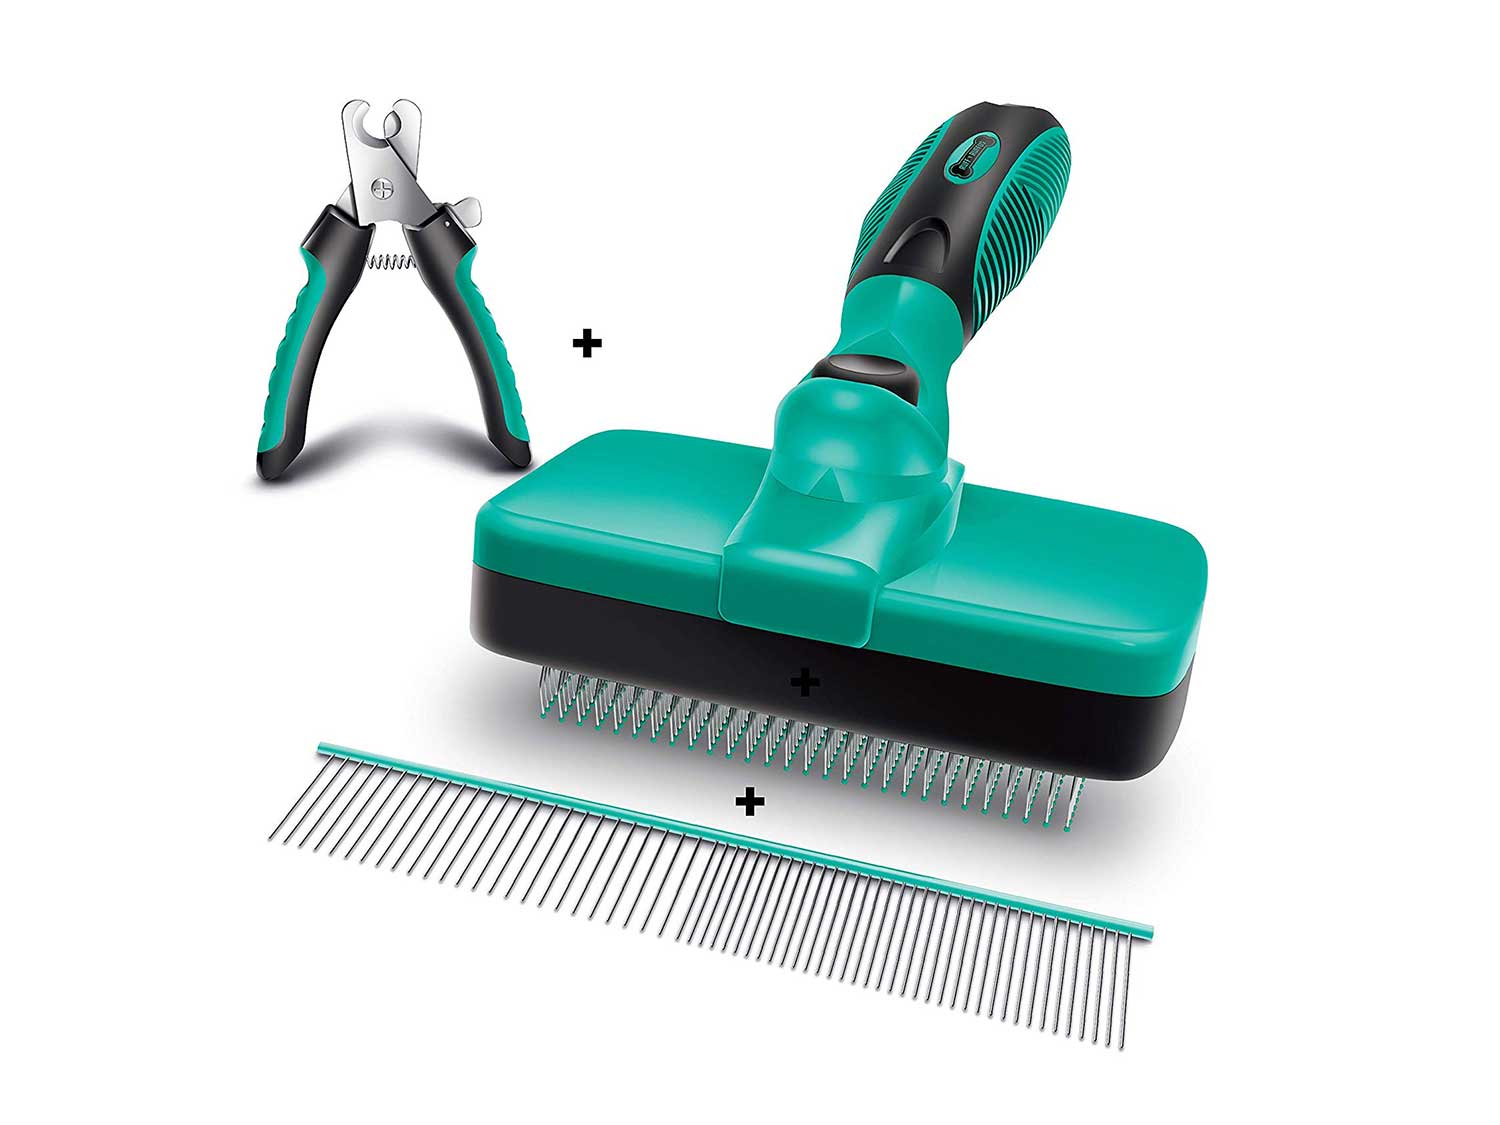 Ruff 'n Ruffus Self-Cleaning Slicker Brush + 2 Free Bonuses   Steel Comb + Pet Nail Clippers  Grooming Supplies Great for All Breeds & Hair Types